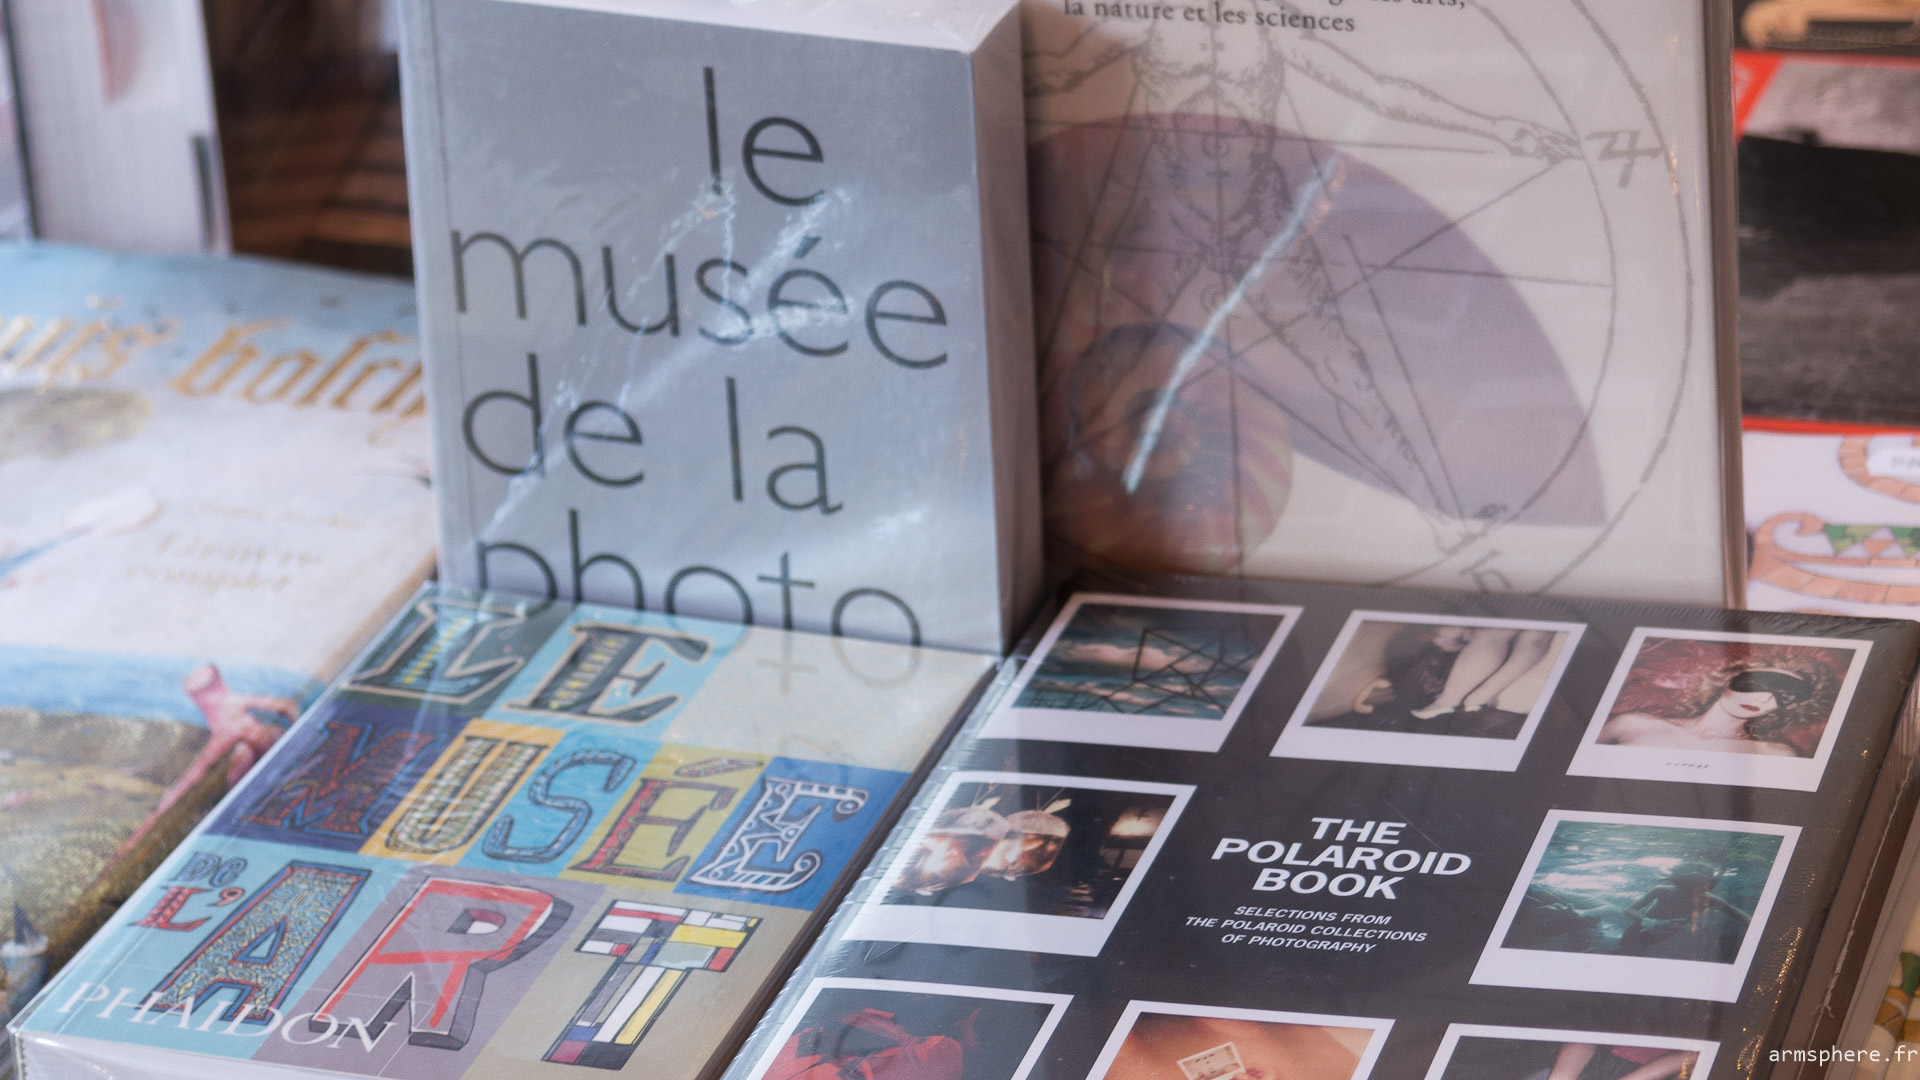 le musée de la photo le musée de l'art the polaroid book selections from the plaroid collections of photography